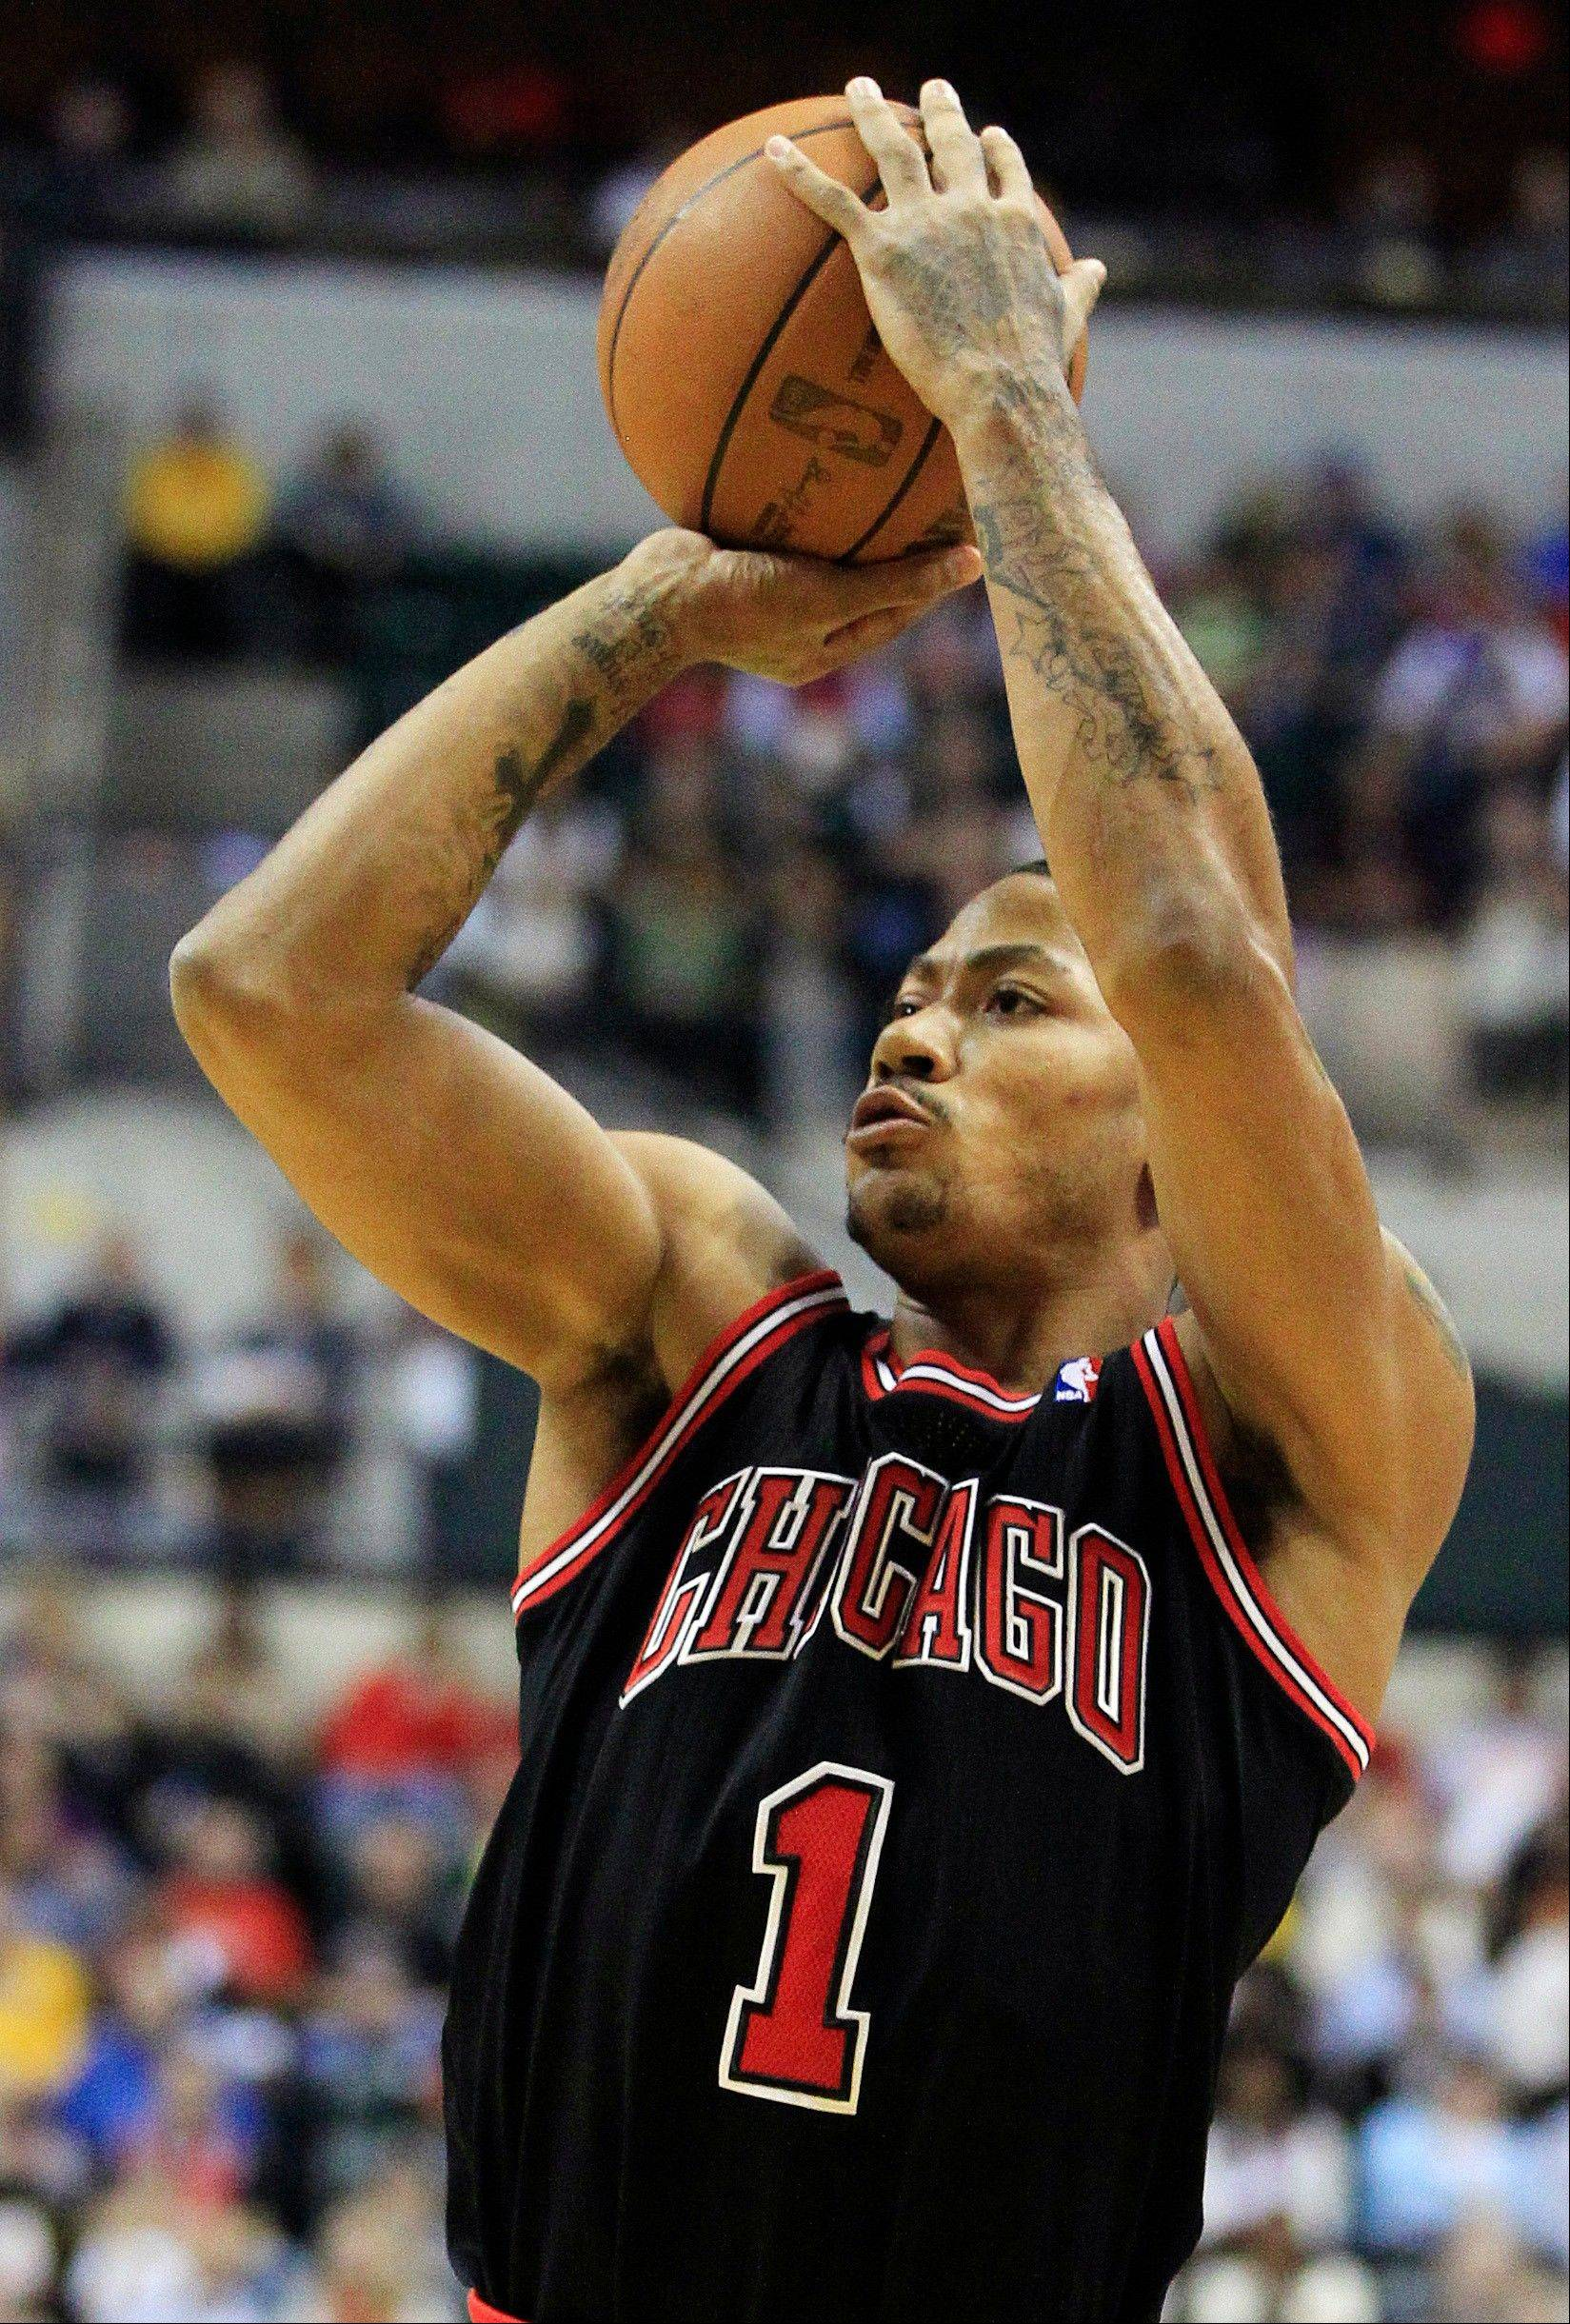 Bulls guard Derrick Rose shoots Wednesday during the first half against the Indiana Pacers.